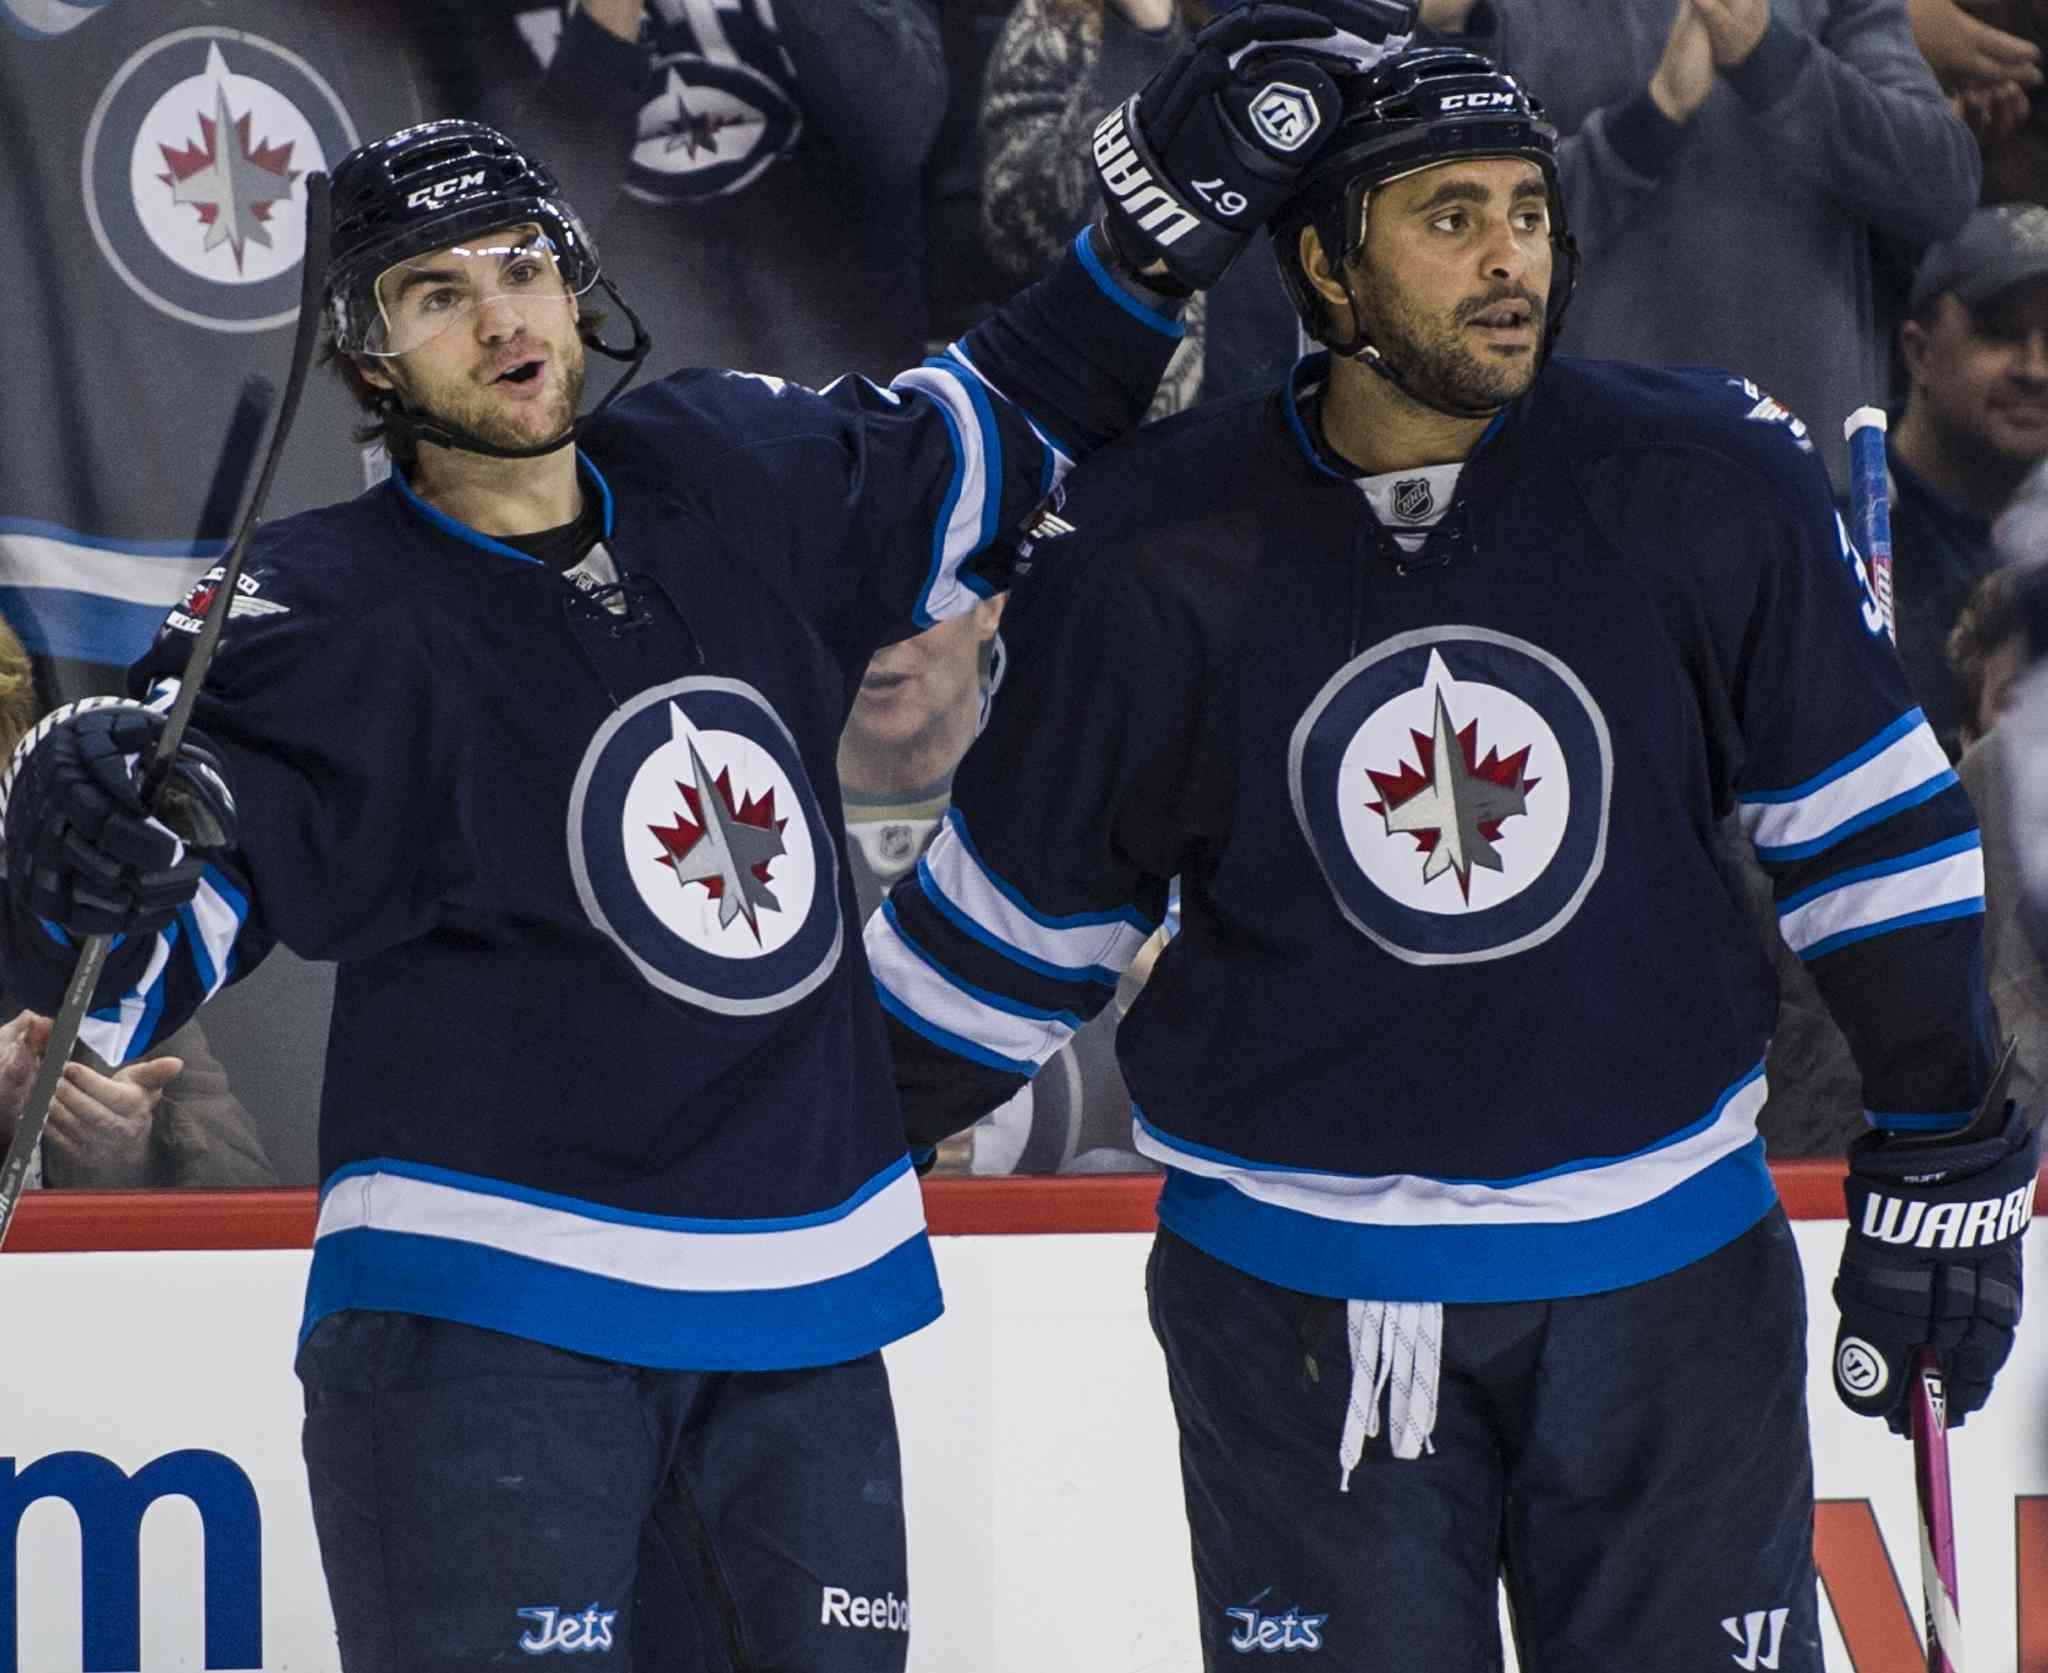 Winnipeg Jets Michael Frolik (#67) celebrates his second period goal against the Florida Panthers with teammate Dustin Byfuglien (#33).